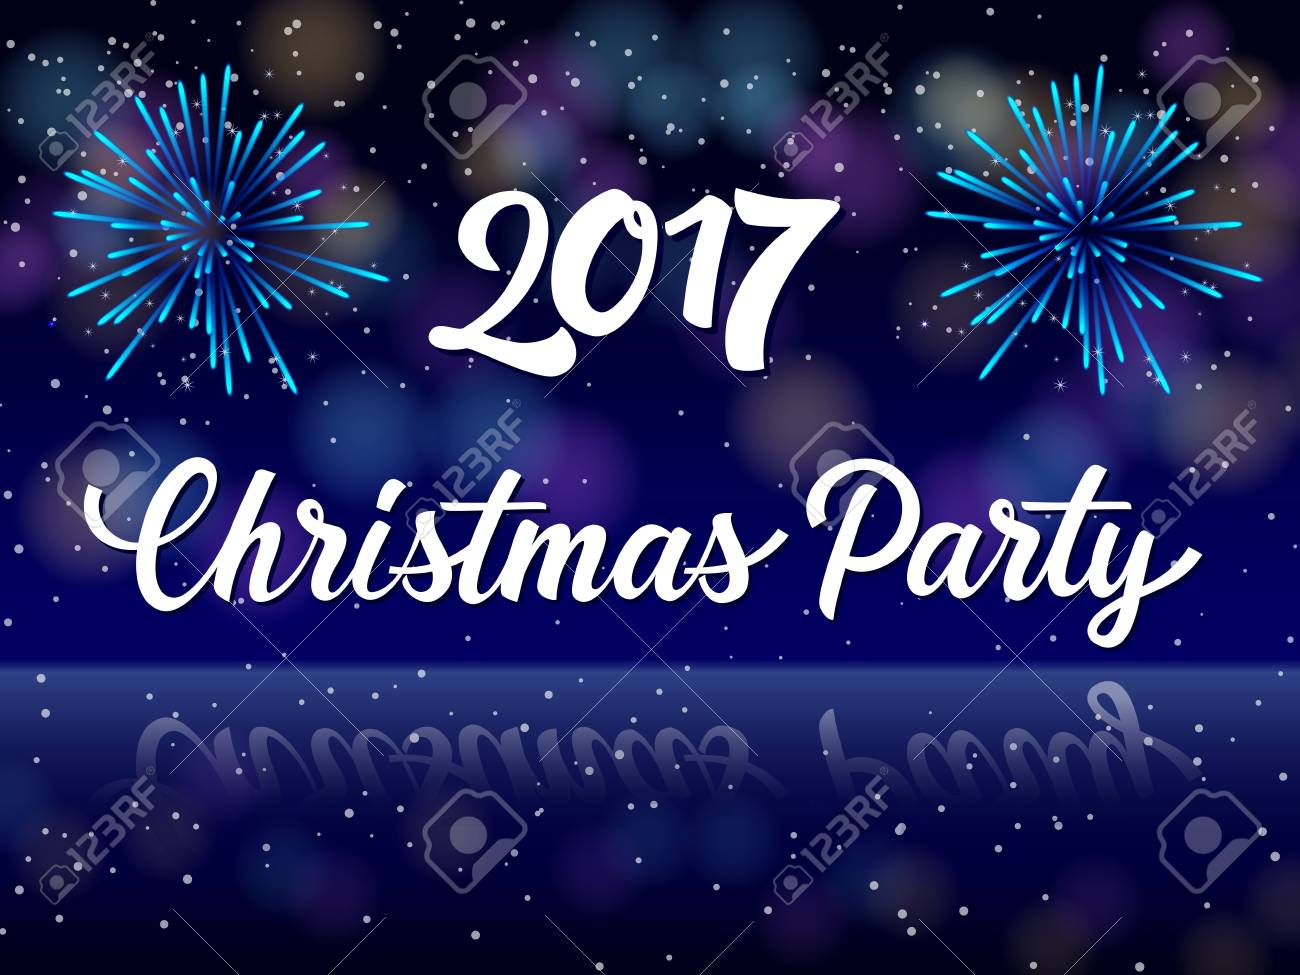 Christmas Party 2017 Lettering. Christmas Invitation With ...